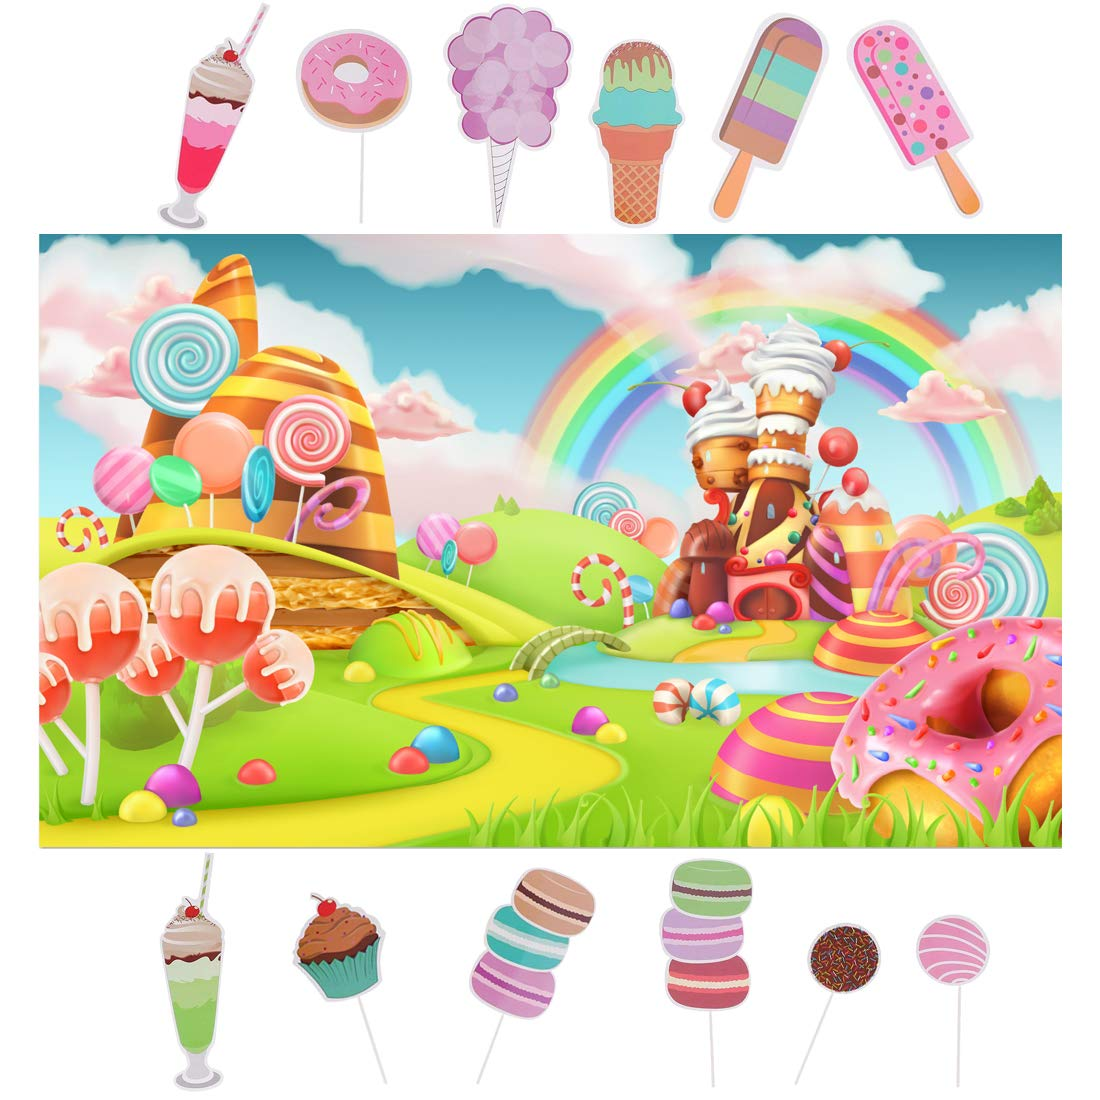 Spotlip Rainbow Candy Photo Backdrop and Studio Props DIY Kit.1 PCS Candyland Photo Booth Background,12 PCS Lollipop ice Cream Photo Booth Props,Princess Baby Shower Birthday Party Supplies